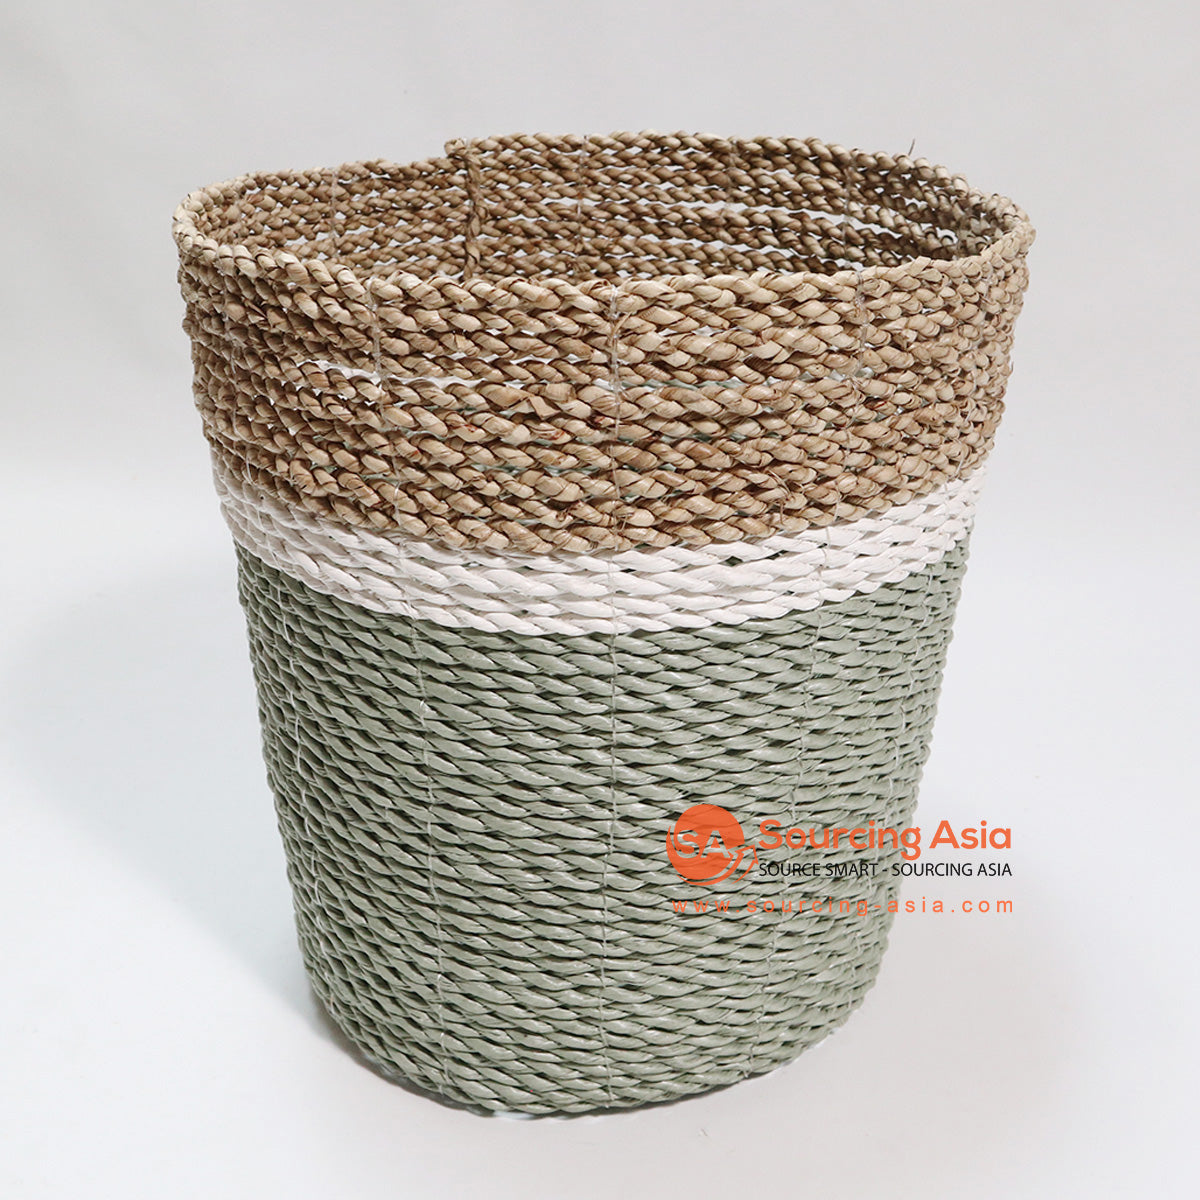 HBSC069-3 SEA GRASS WASTE PAPER BASKET